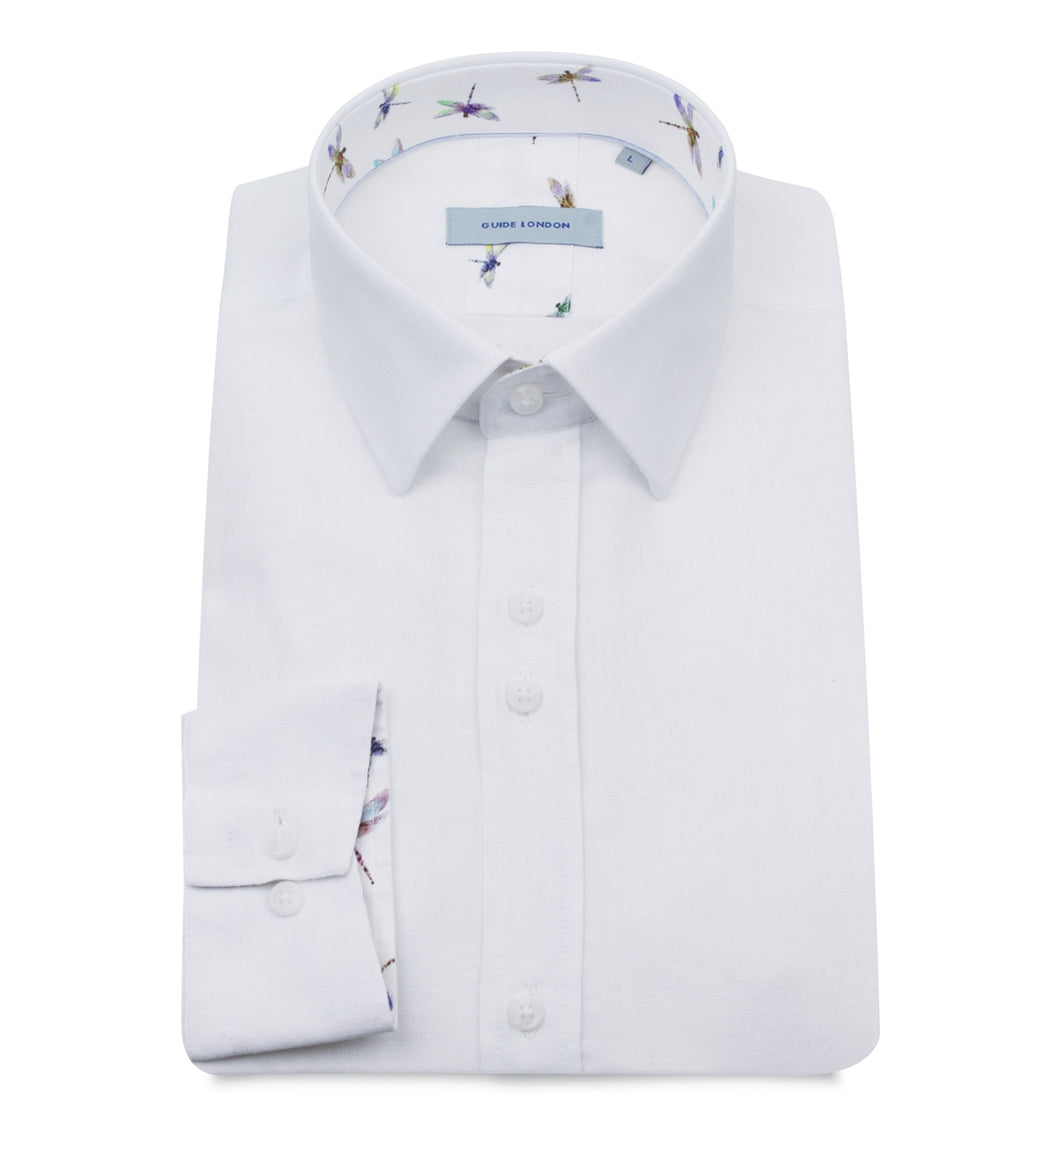 Guide London White Linen Mix Shirt - LS75025